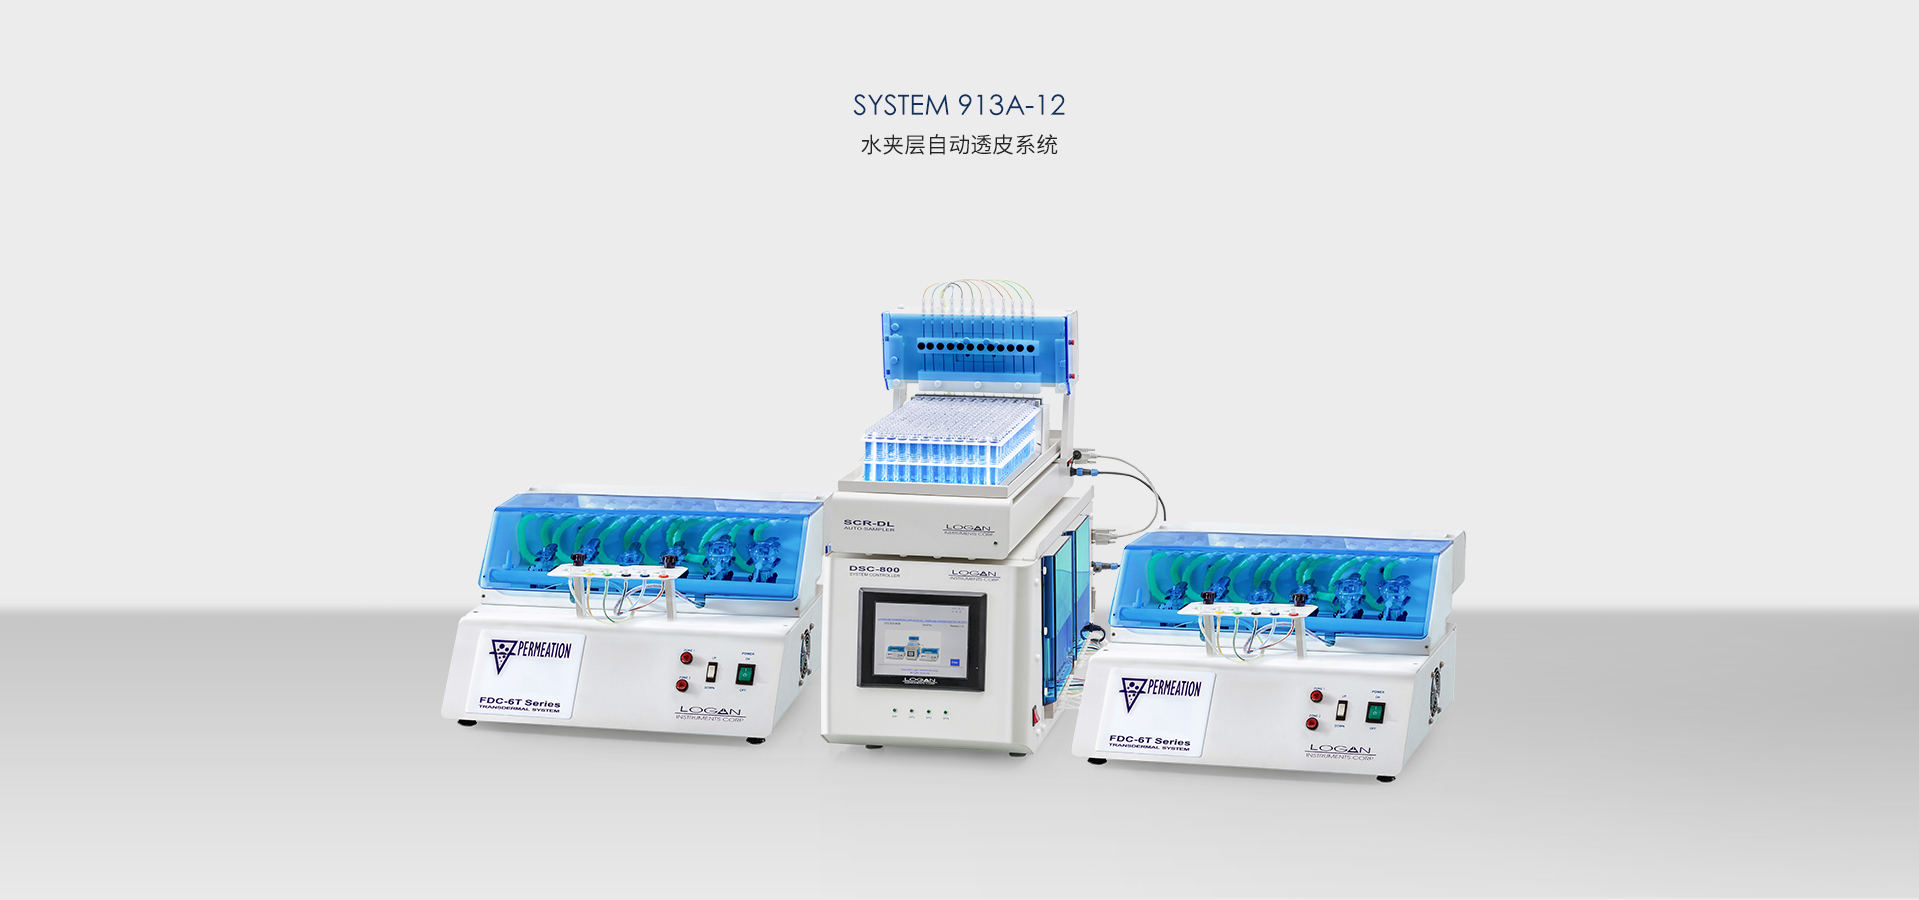 SYSTEM 913A-12